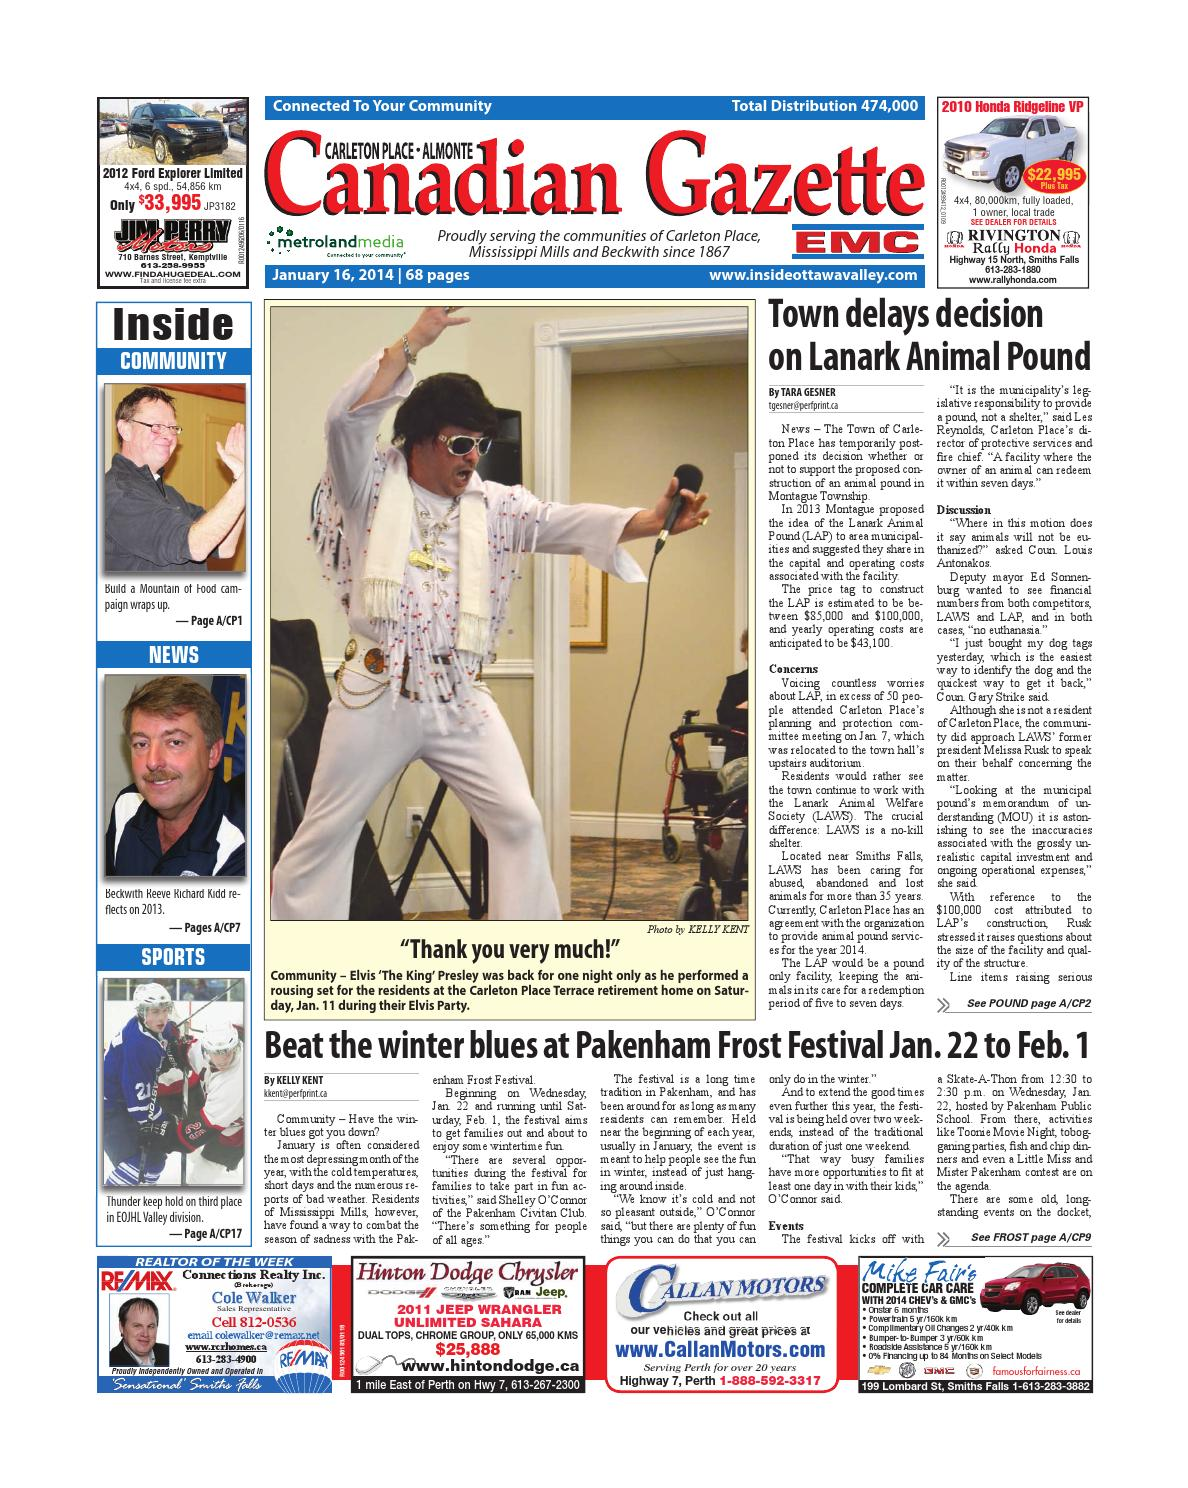 Almontecarletonplace011614 by metroland east almonte carleton almontecarletonplace011614 by metroland east almonte carleton place canadian gazette issuu fandeluxe Images